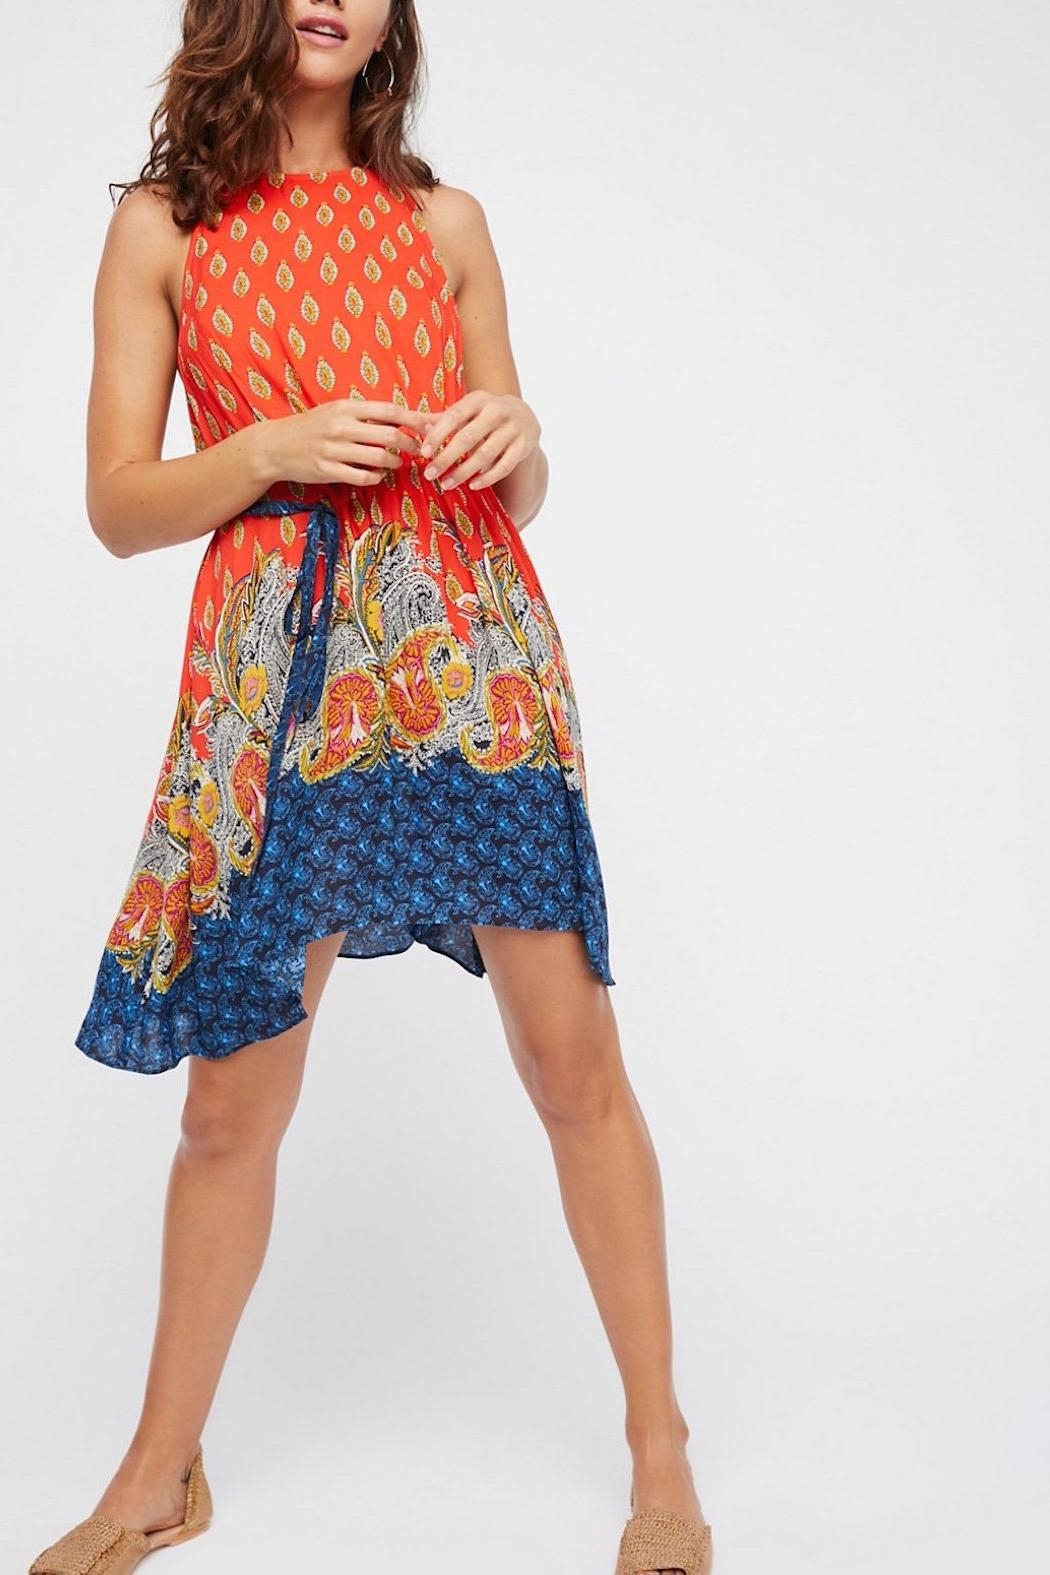 Free People Rendezvous Girl Dress - Main Image